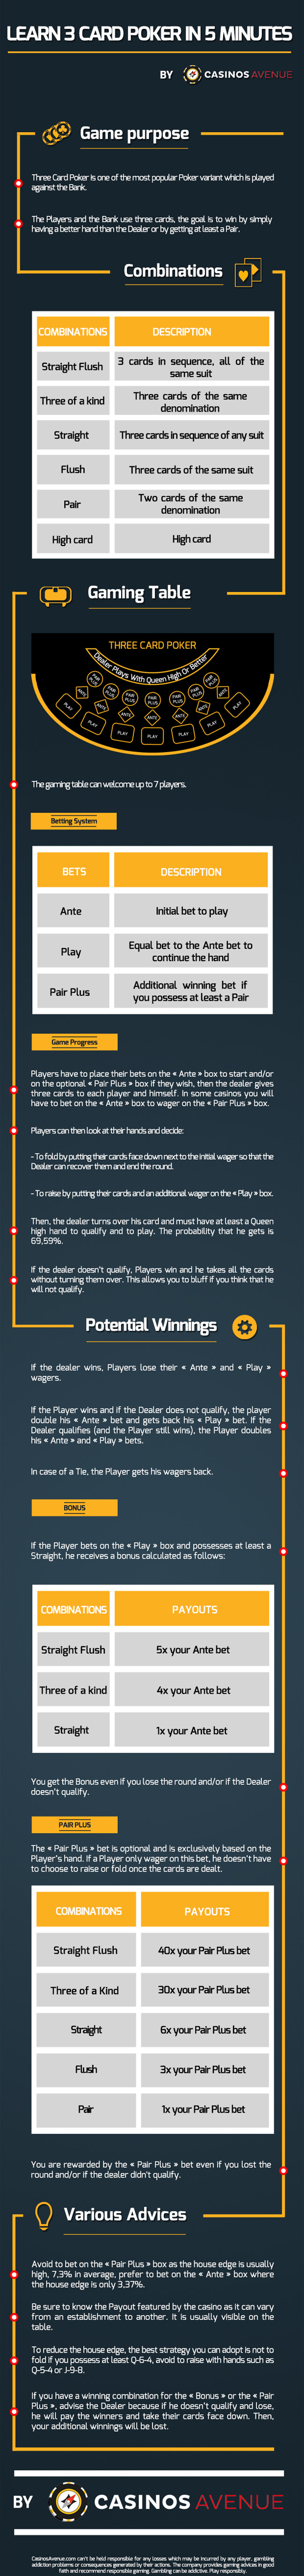 3 card poker rules in casino